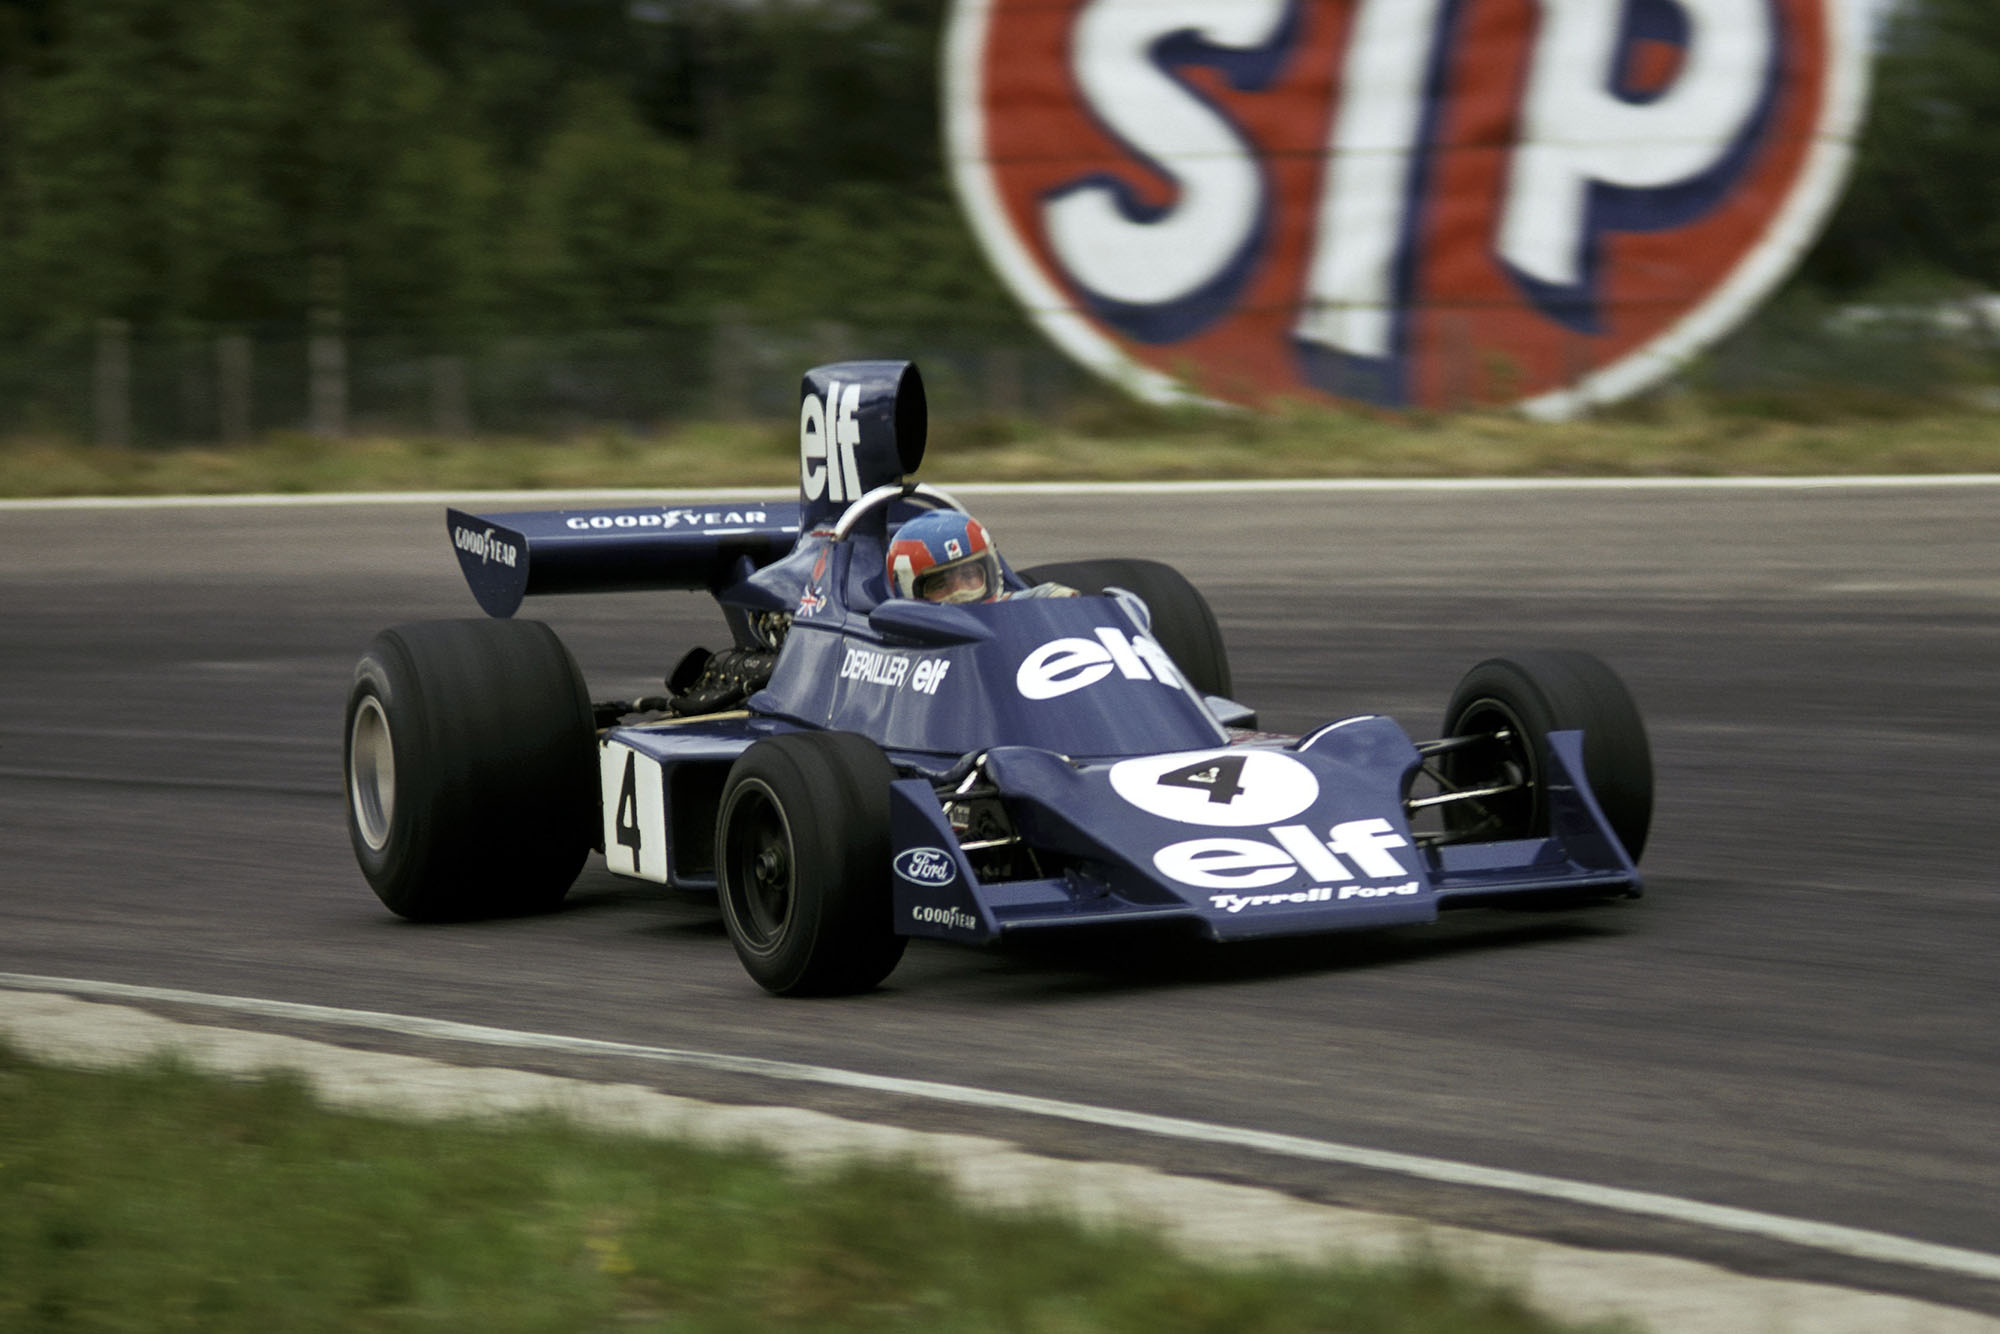 Patrick Depailler competing for Tyrrell at the 1974 Swedish Grand Prix.